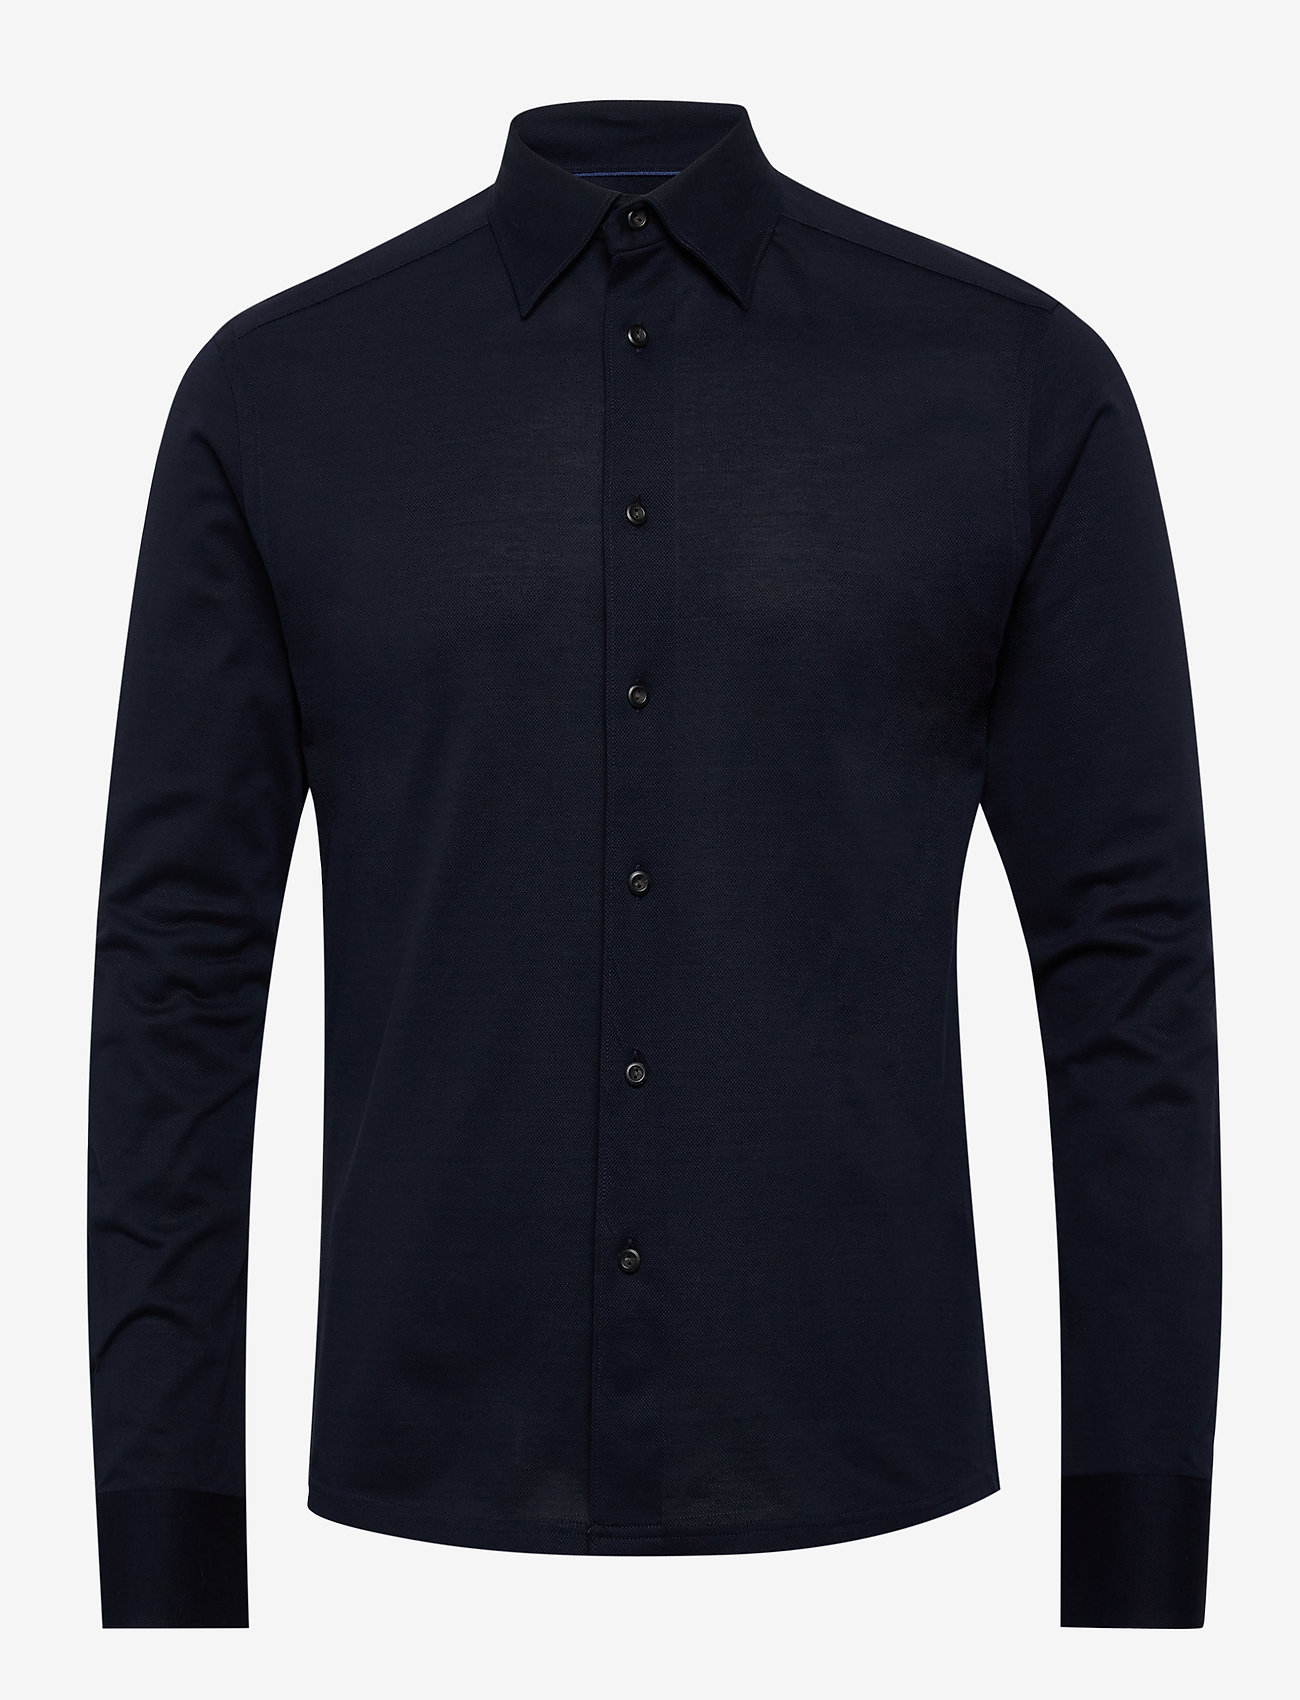 Eton - Polo shirt - long sleeved - basic shirts - blue